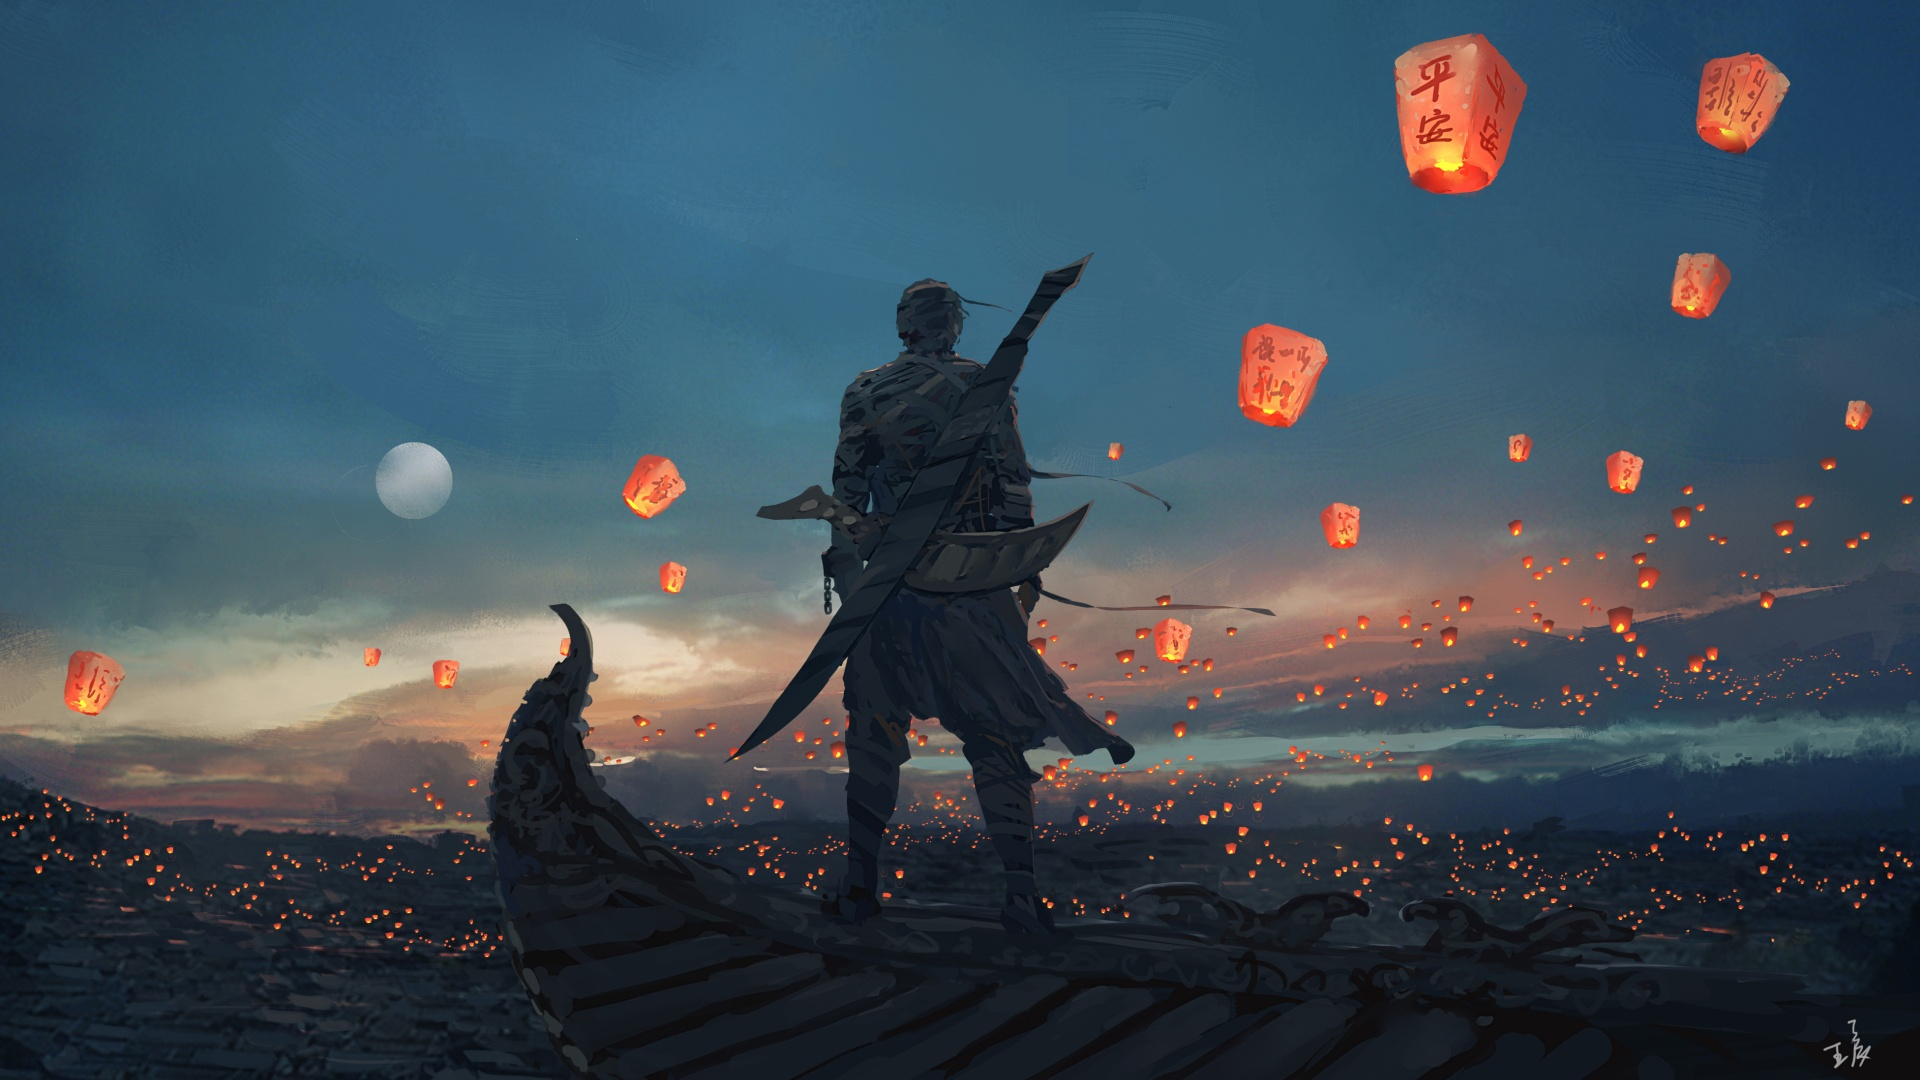 1920x1080 Sky lantern art Wallpaper